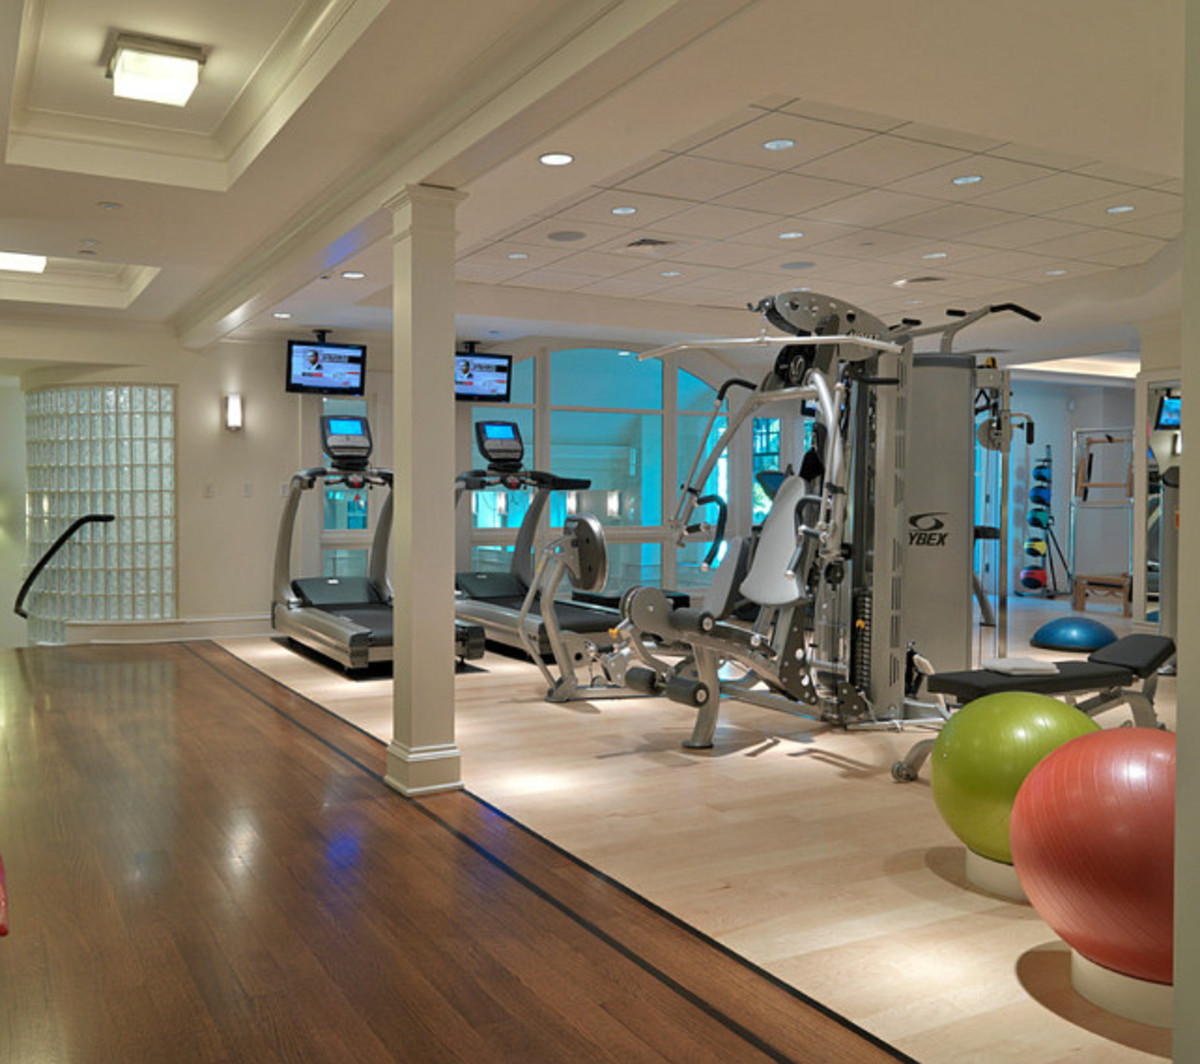 Light Dark and Medium Wood Tones in a fitness room = Surprised Elegance